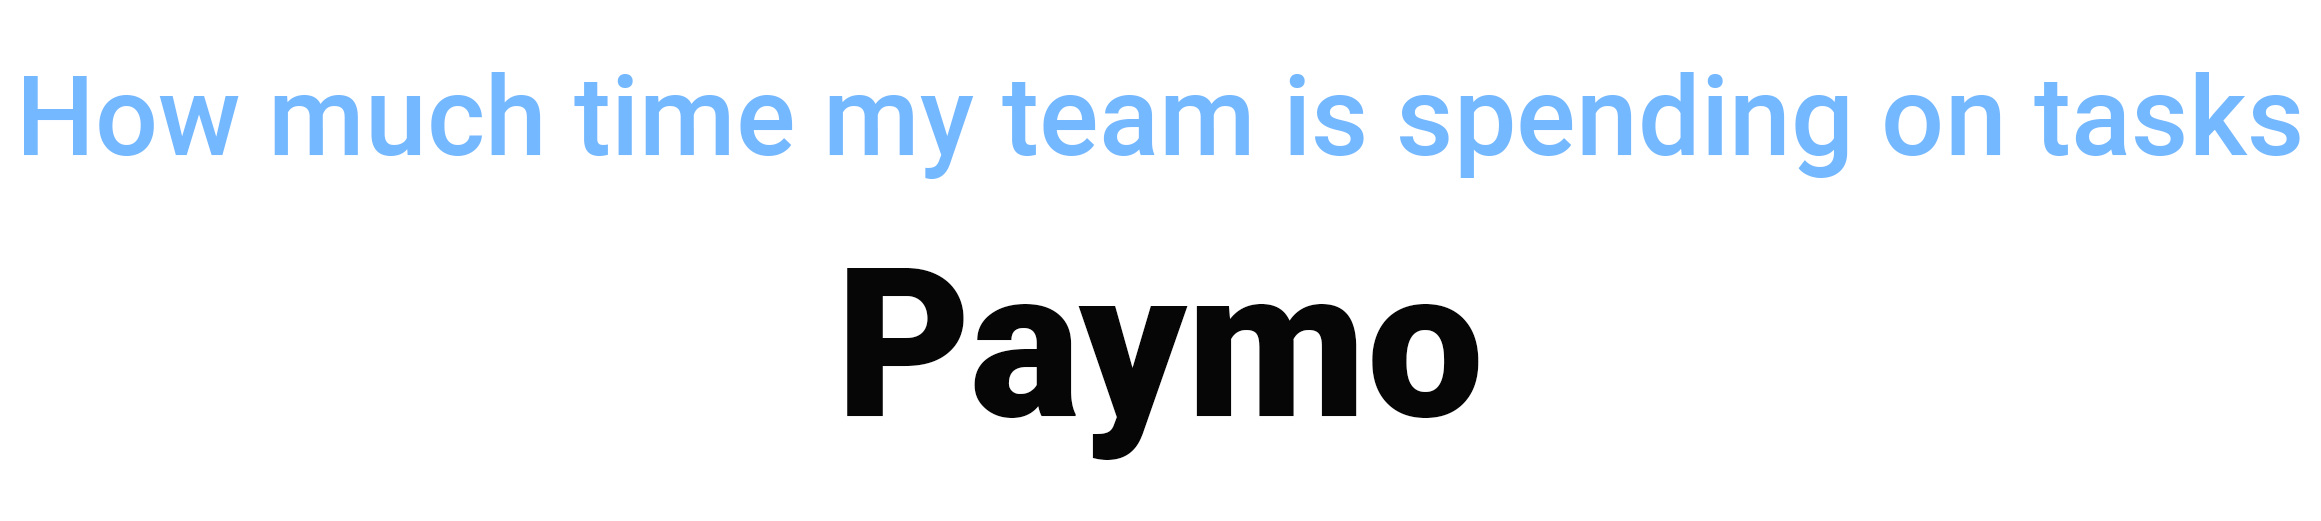 How much time my team is spending on tasks PAYMO remote team management